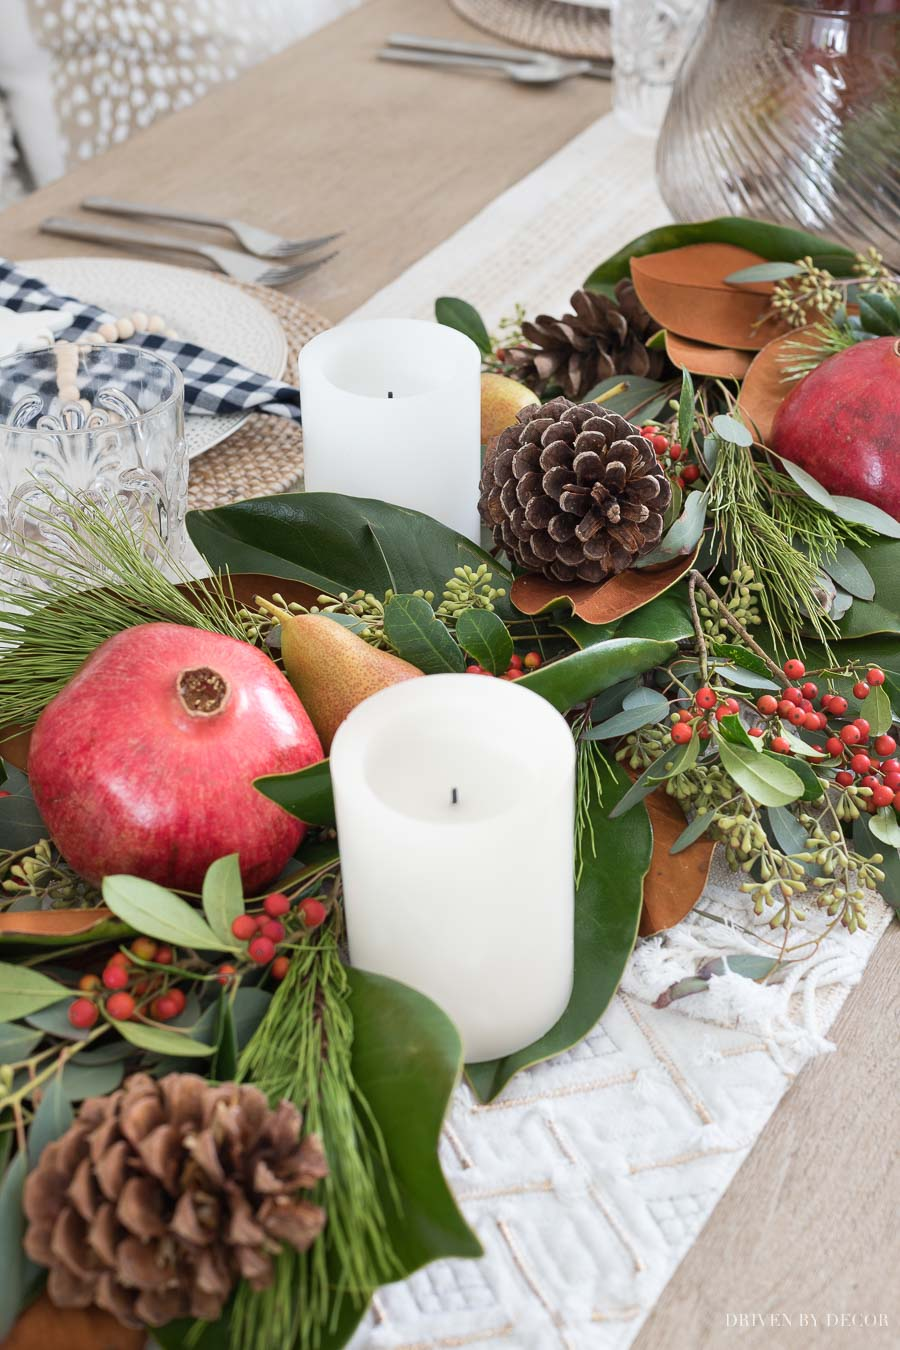 An awesome step by step tutorial for creating a fresh greenery table runner!